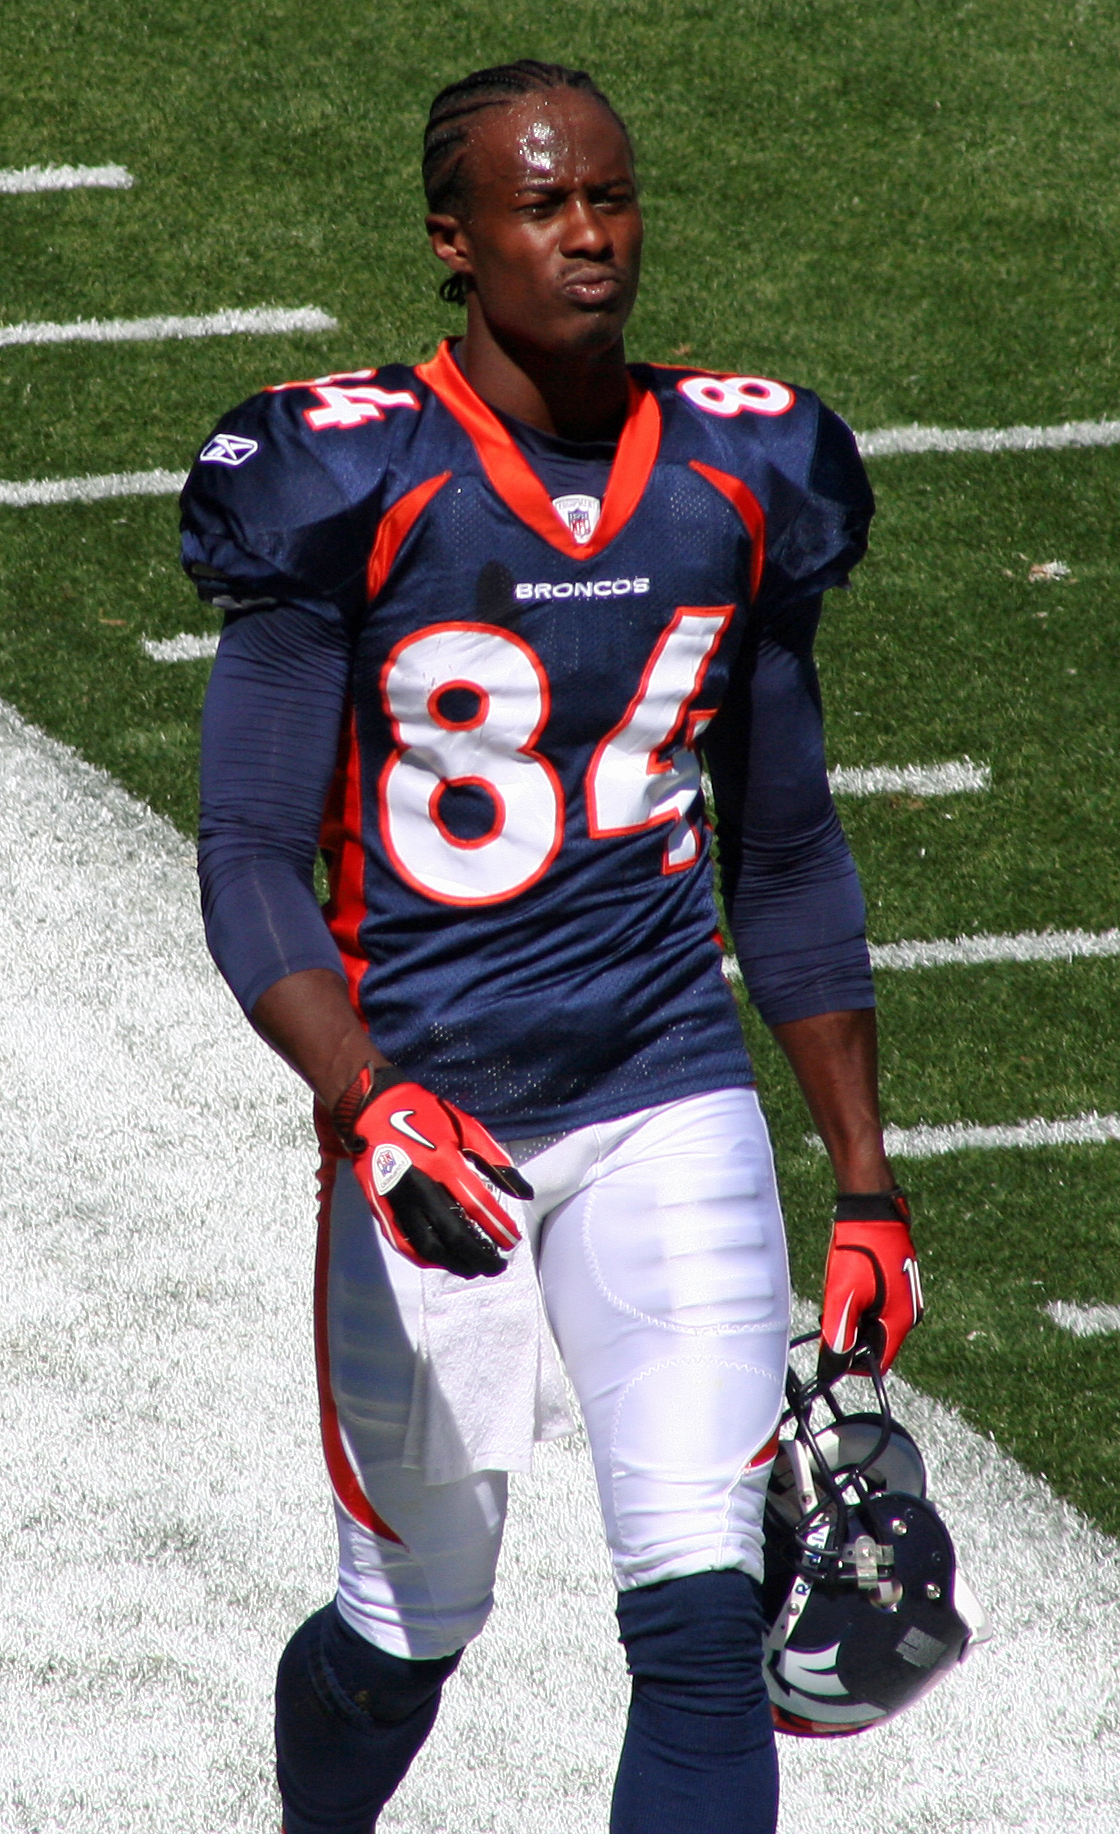 File:Brandon Lloyd.JPG - Wikimedia Commons